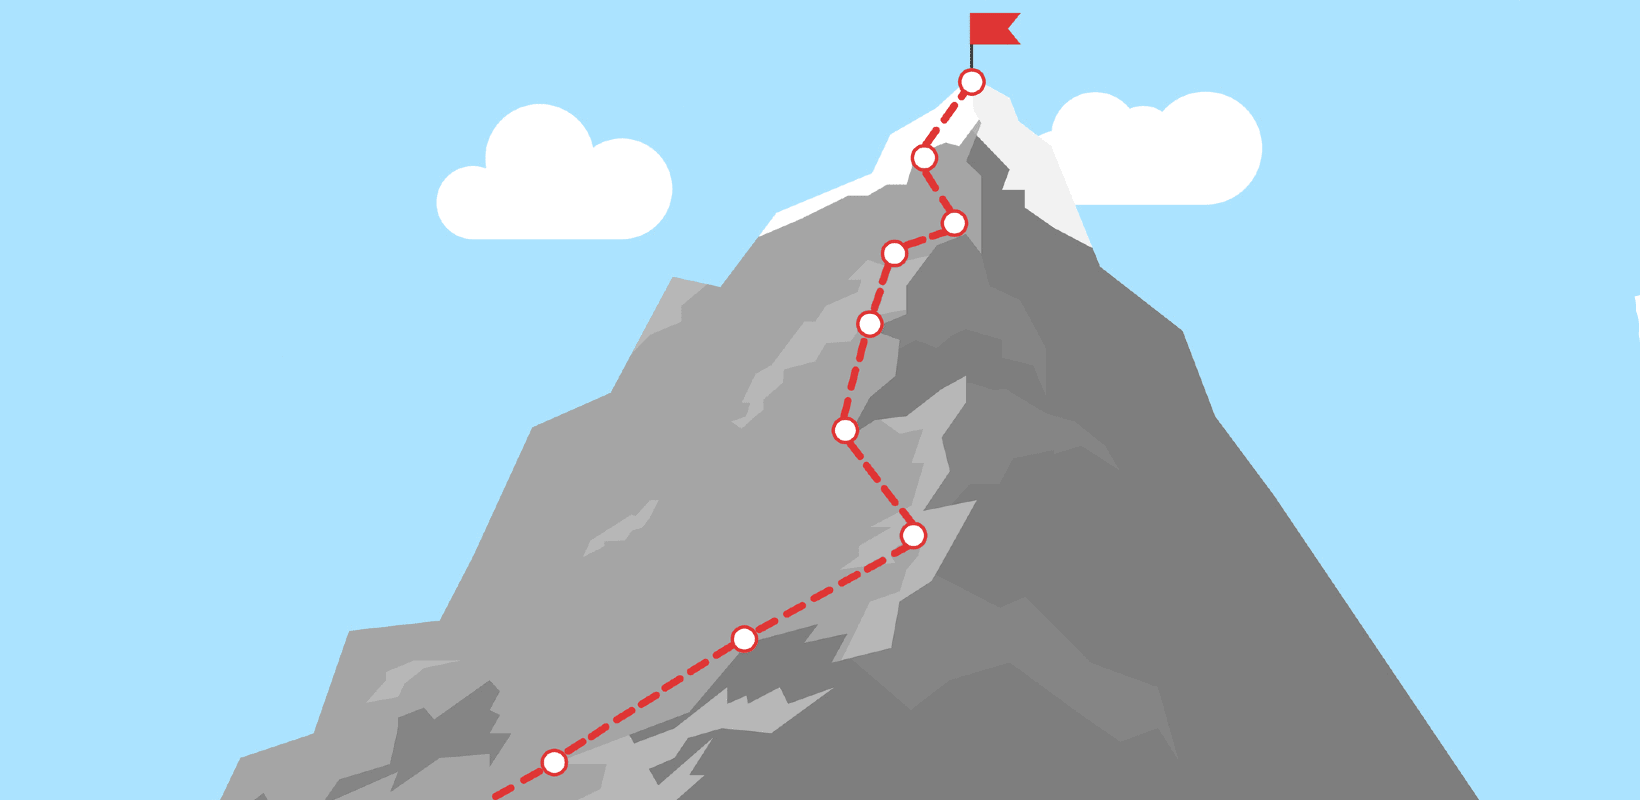 Illustration of a mountain with a flag planted at the top.